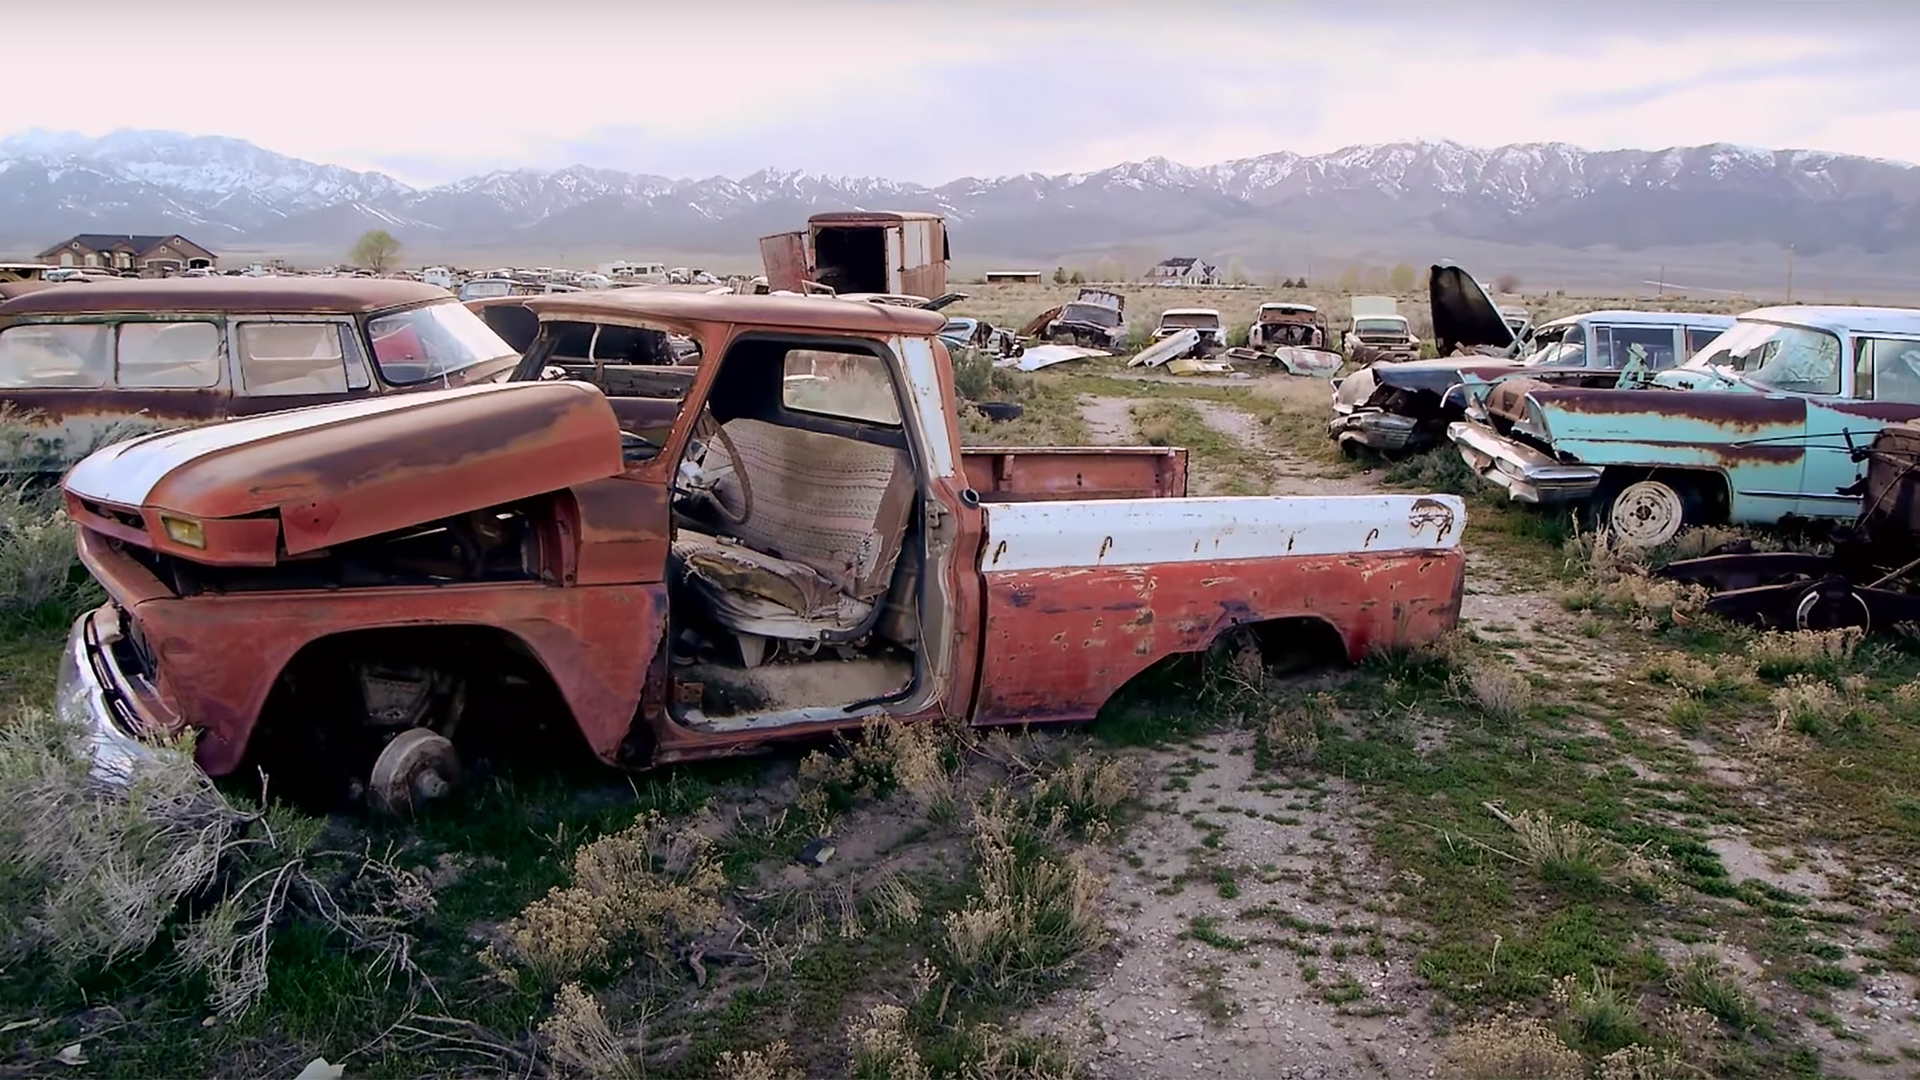 Suburban Development Is Forcing Utah's Last Classic Car Parts Yard